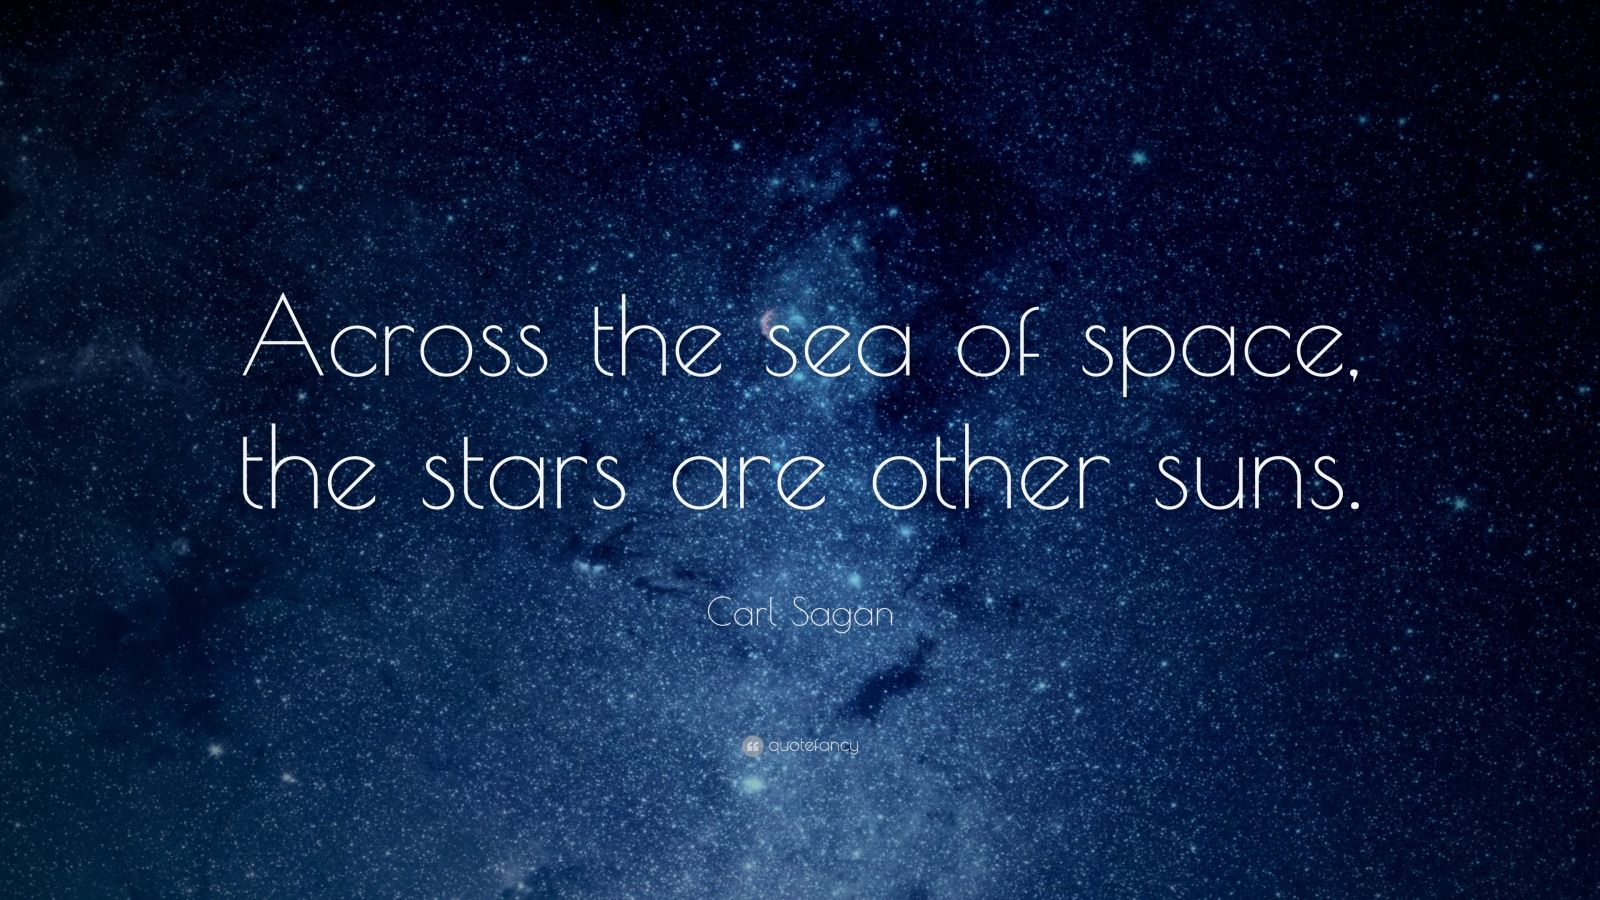 Studying Quotes Wallpaper Carl Sagan Quote Across The Sea Of Space The Stars Are